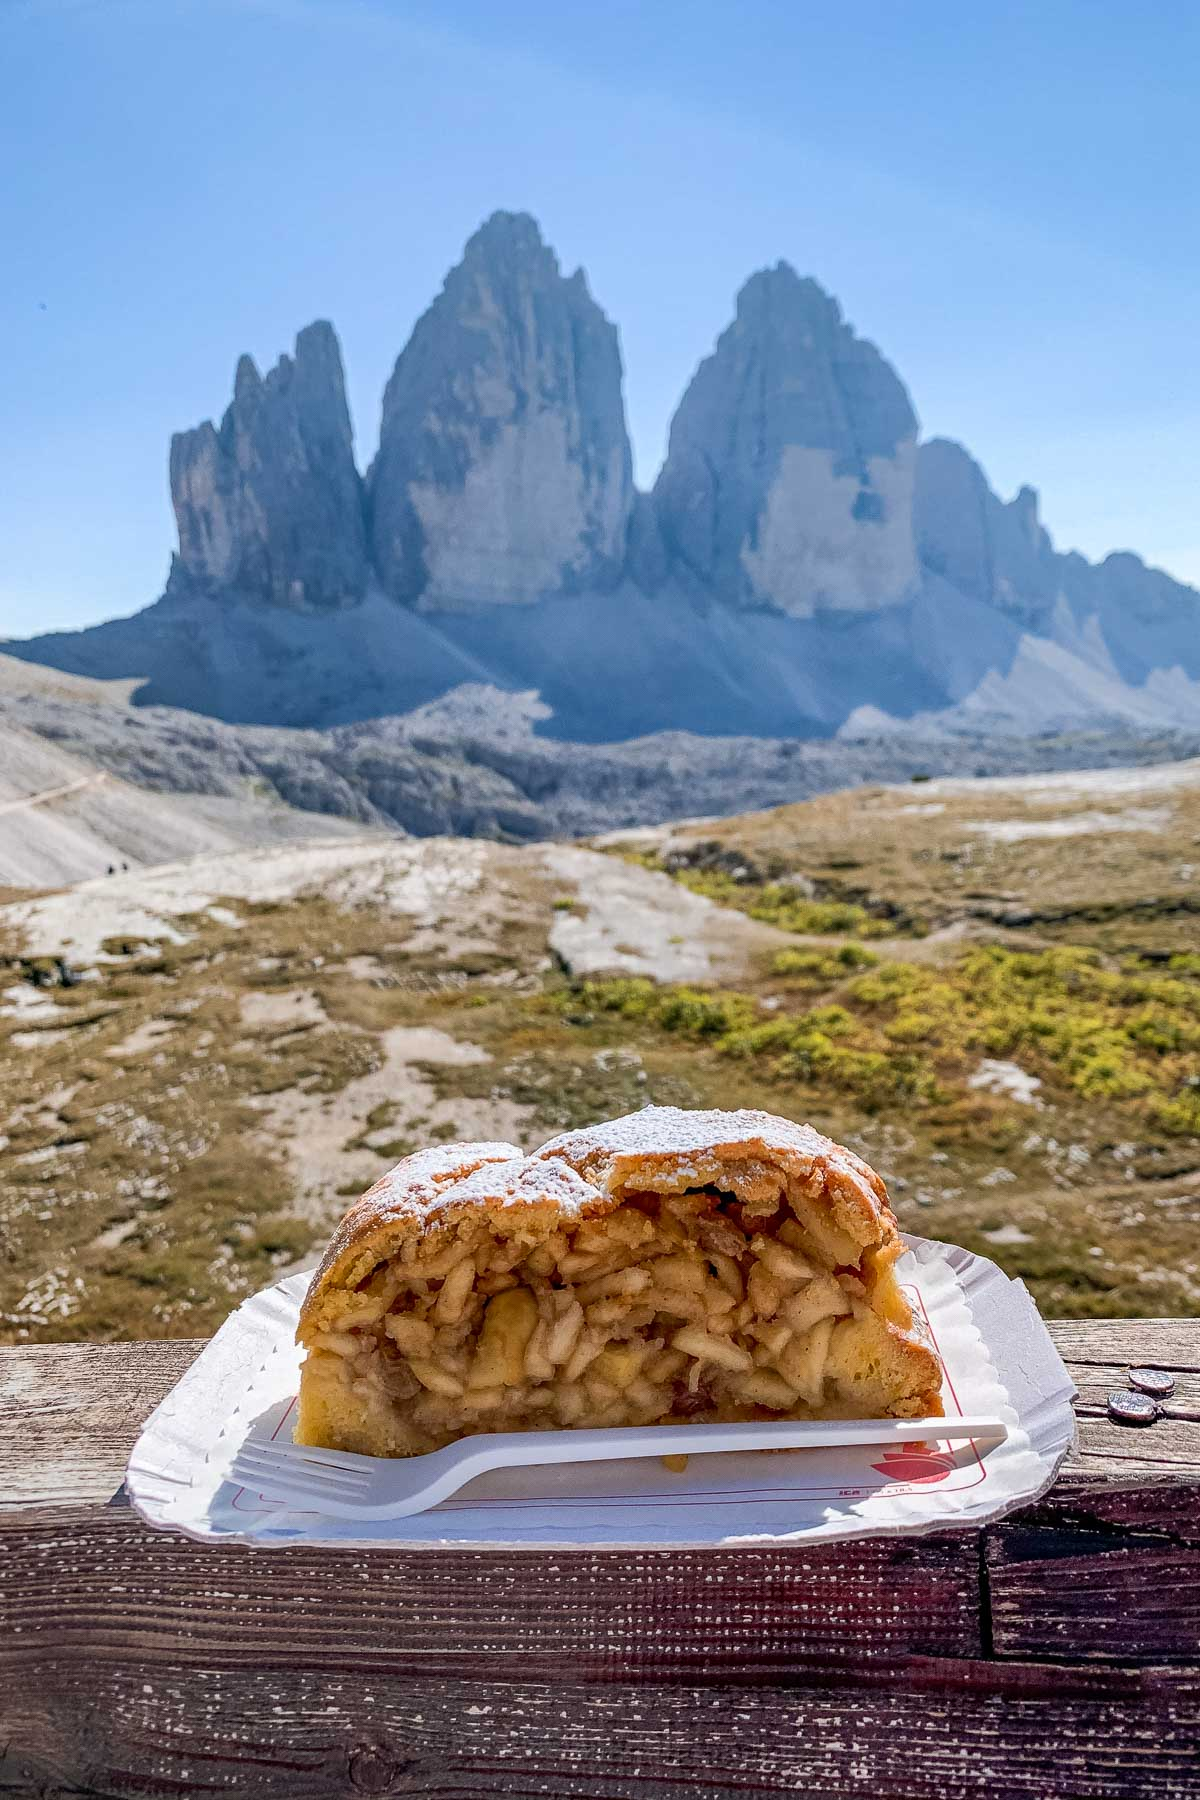 Apple pie with the view of Tre Cime di Lavaredo